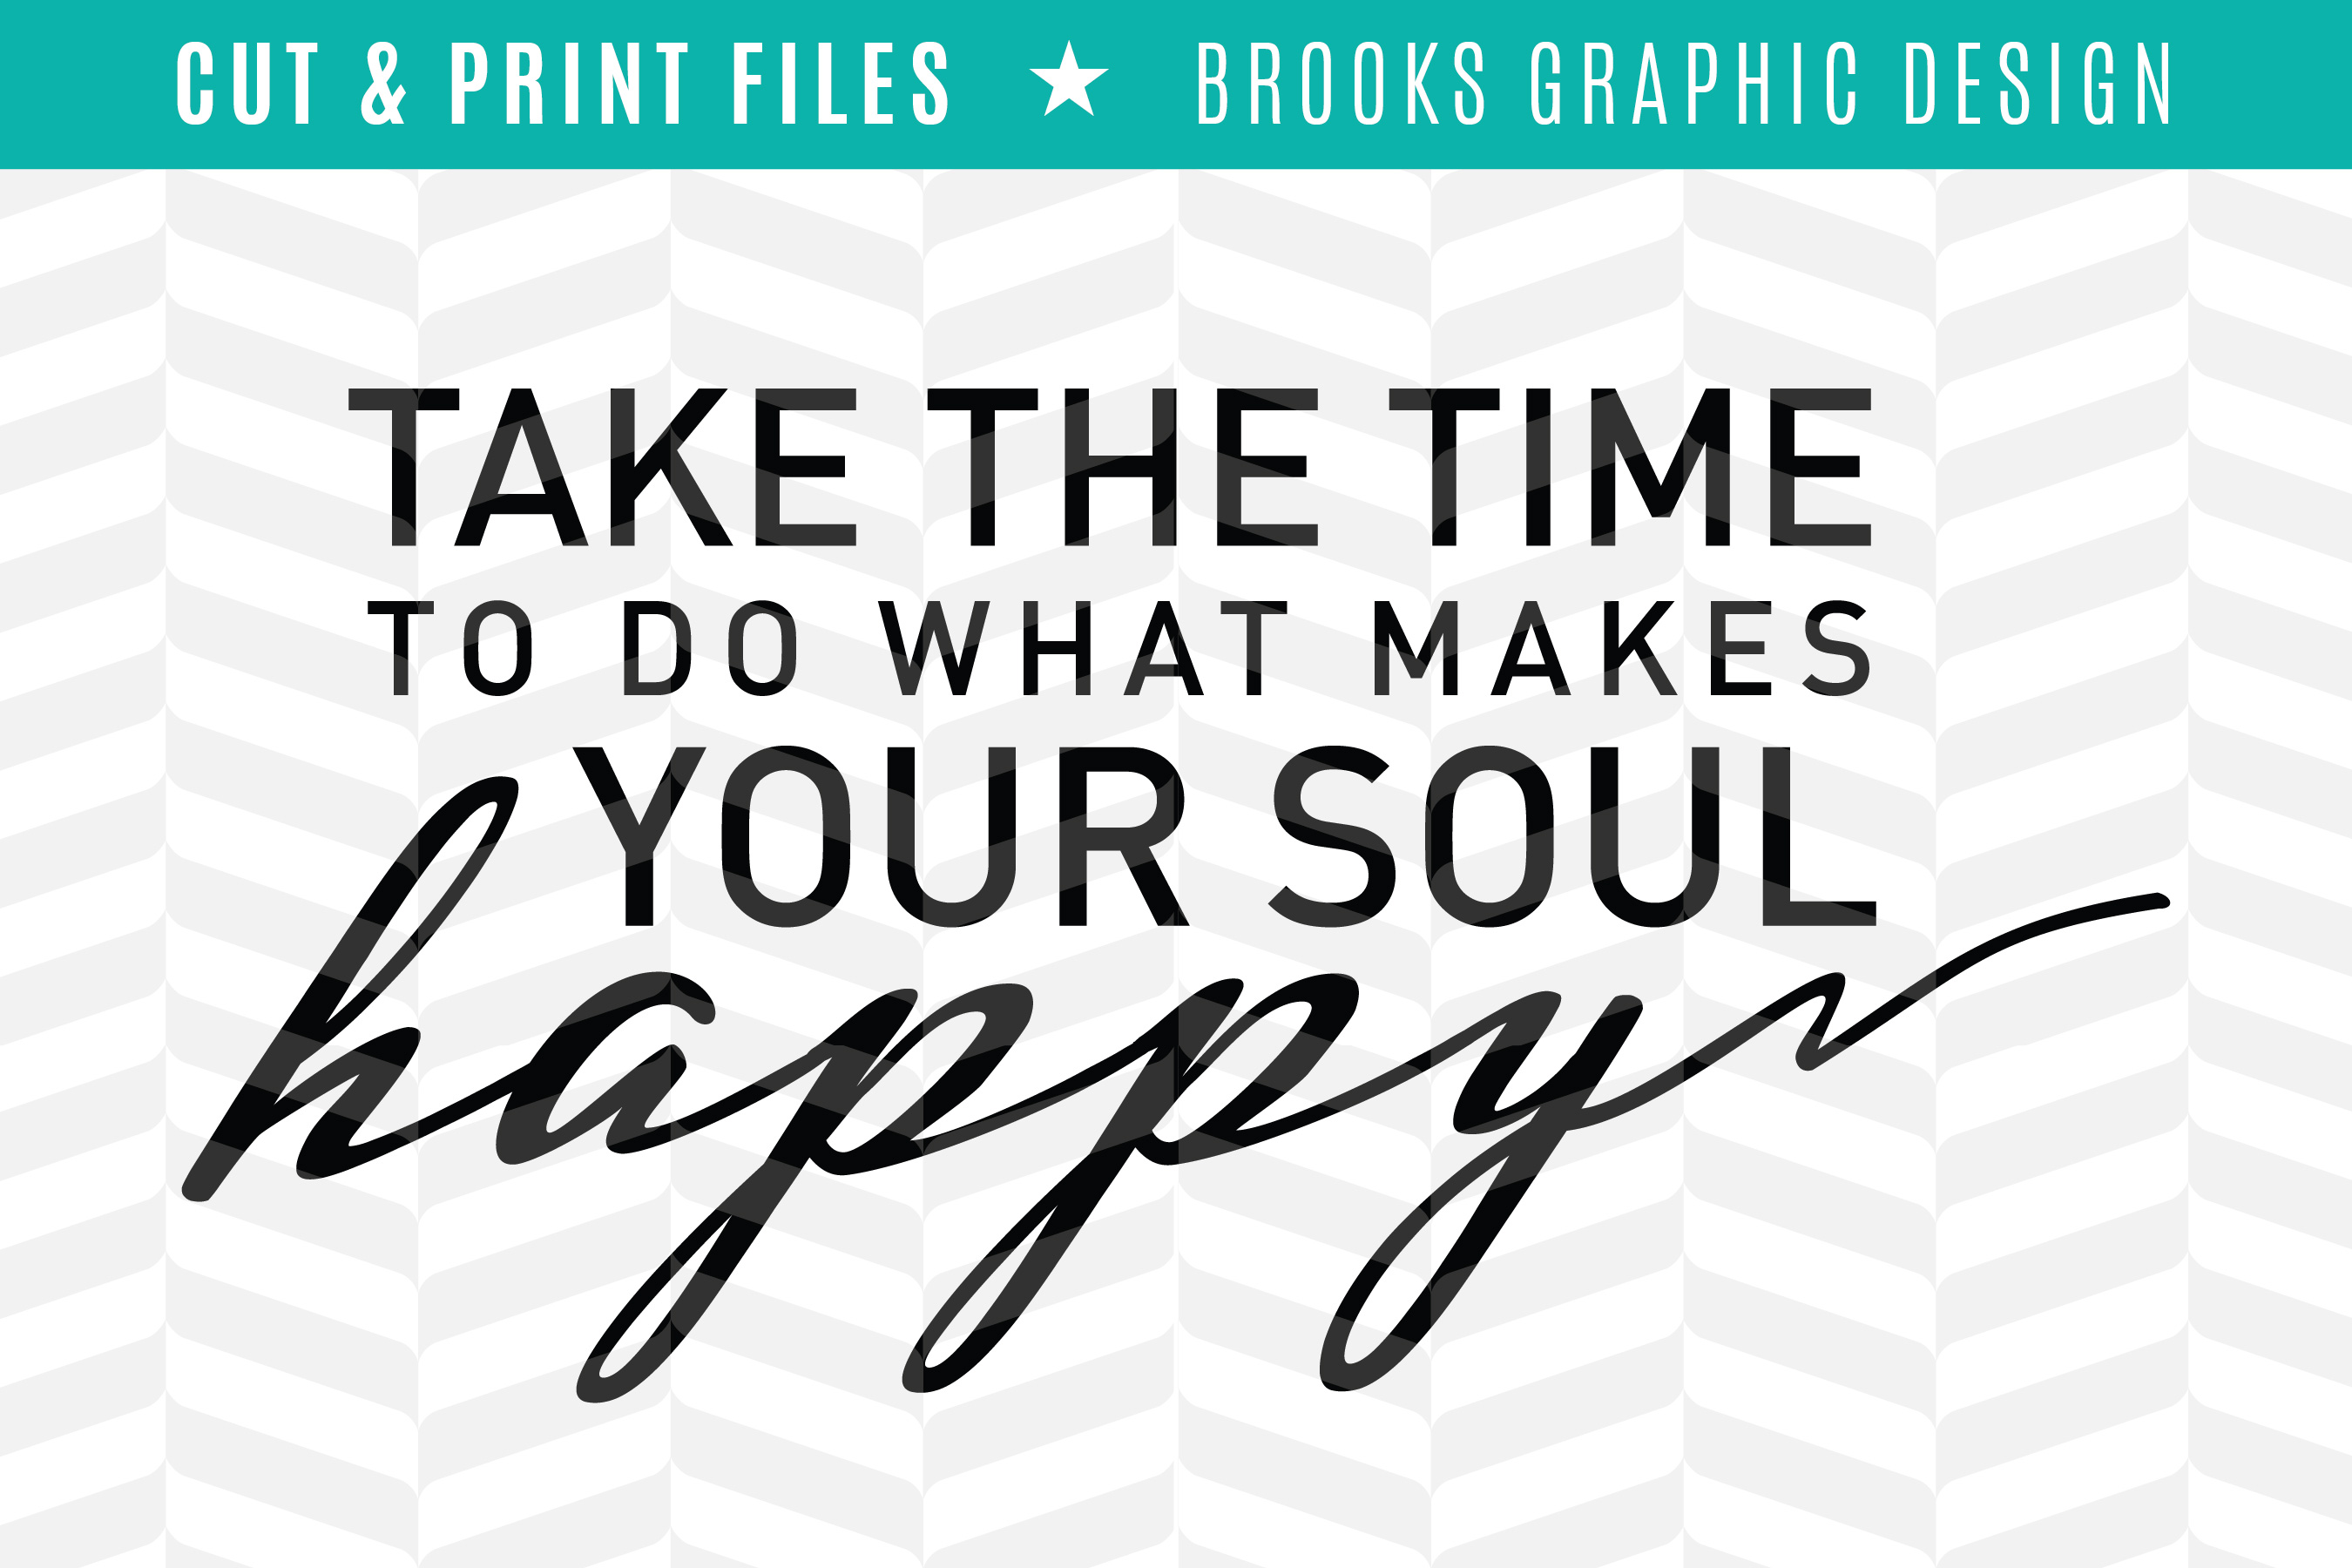 Makes Your Soul Happy - DXF/SVG/PNG/PDF Cut & Print Files example image 2